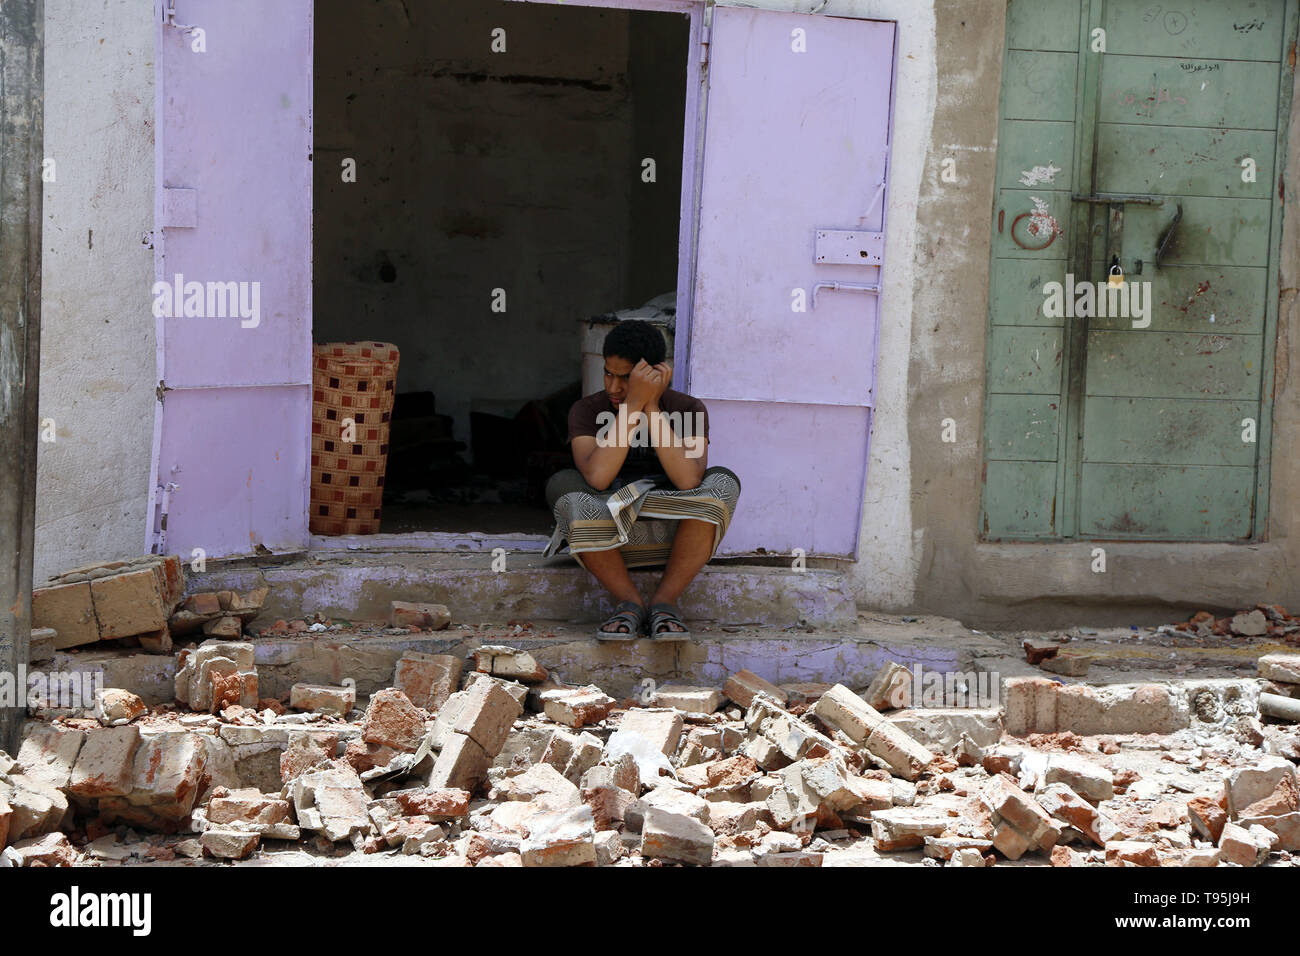 Sanaa, Yemen. 16th May 2019. A man sits on rubble of a house after an airstrike hit by the Saudi Arabia-led coalition in Sanaa, capital of Yemen, May 16, 2019. The Saudi Arabia-led coalition launched airstrikes on Houthi rebels' targets in the Yemeni capital Sanaa on Thursday morning, causing civilian casualties and damages, authorities and local residents said. Credit: Xinhua/Alamy Live News - Stock Image